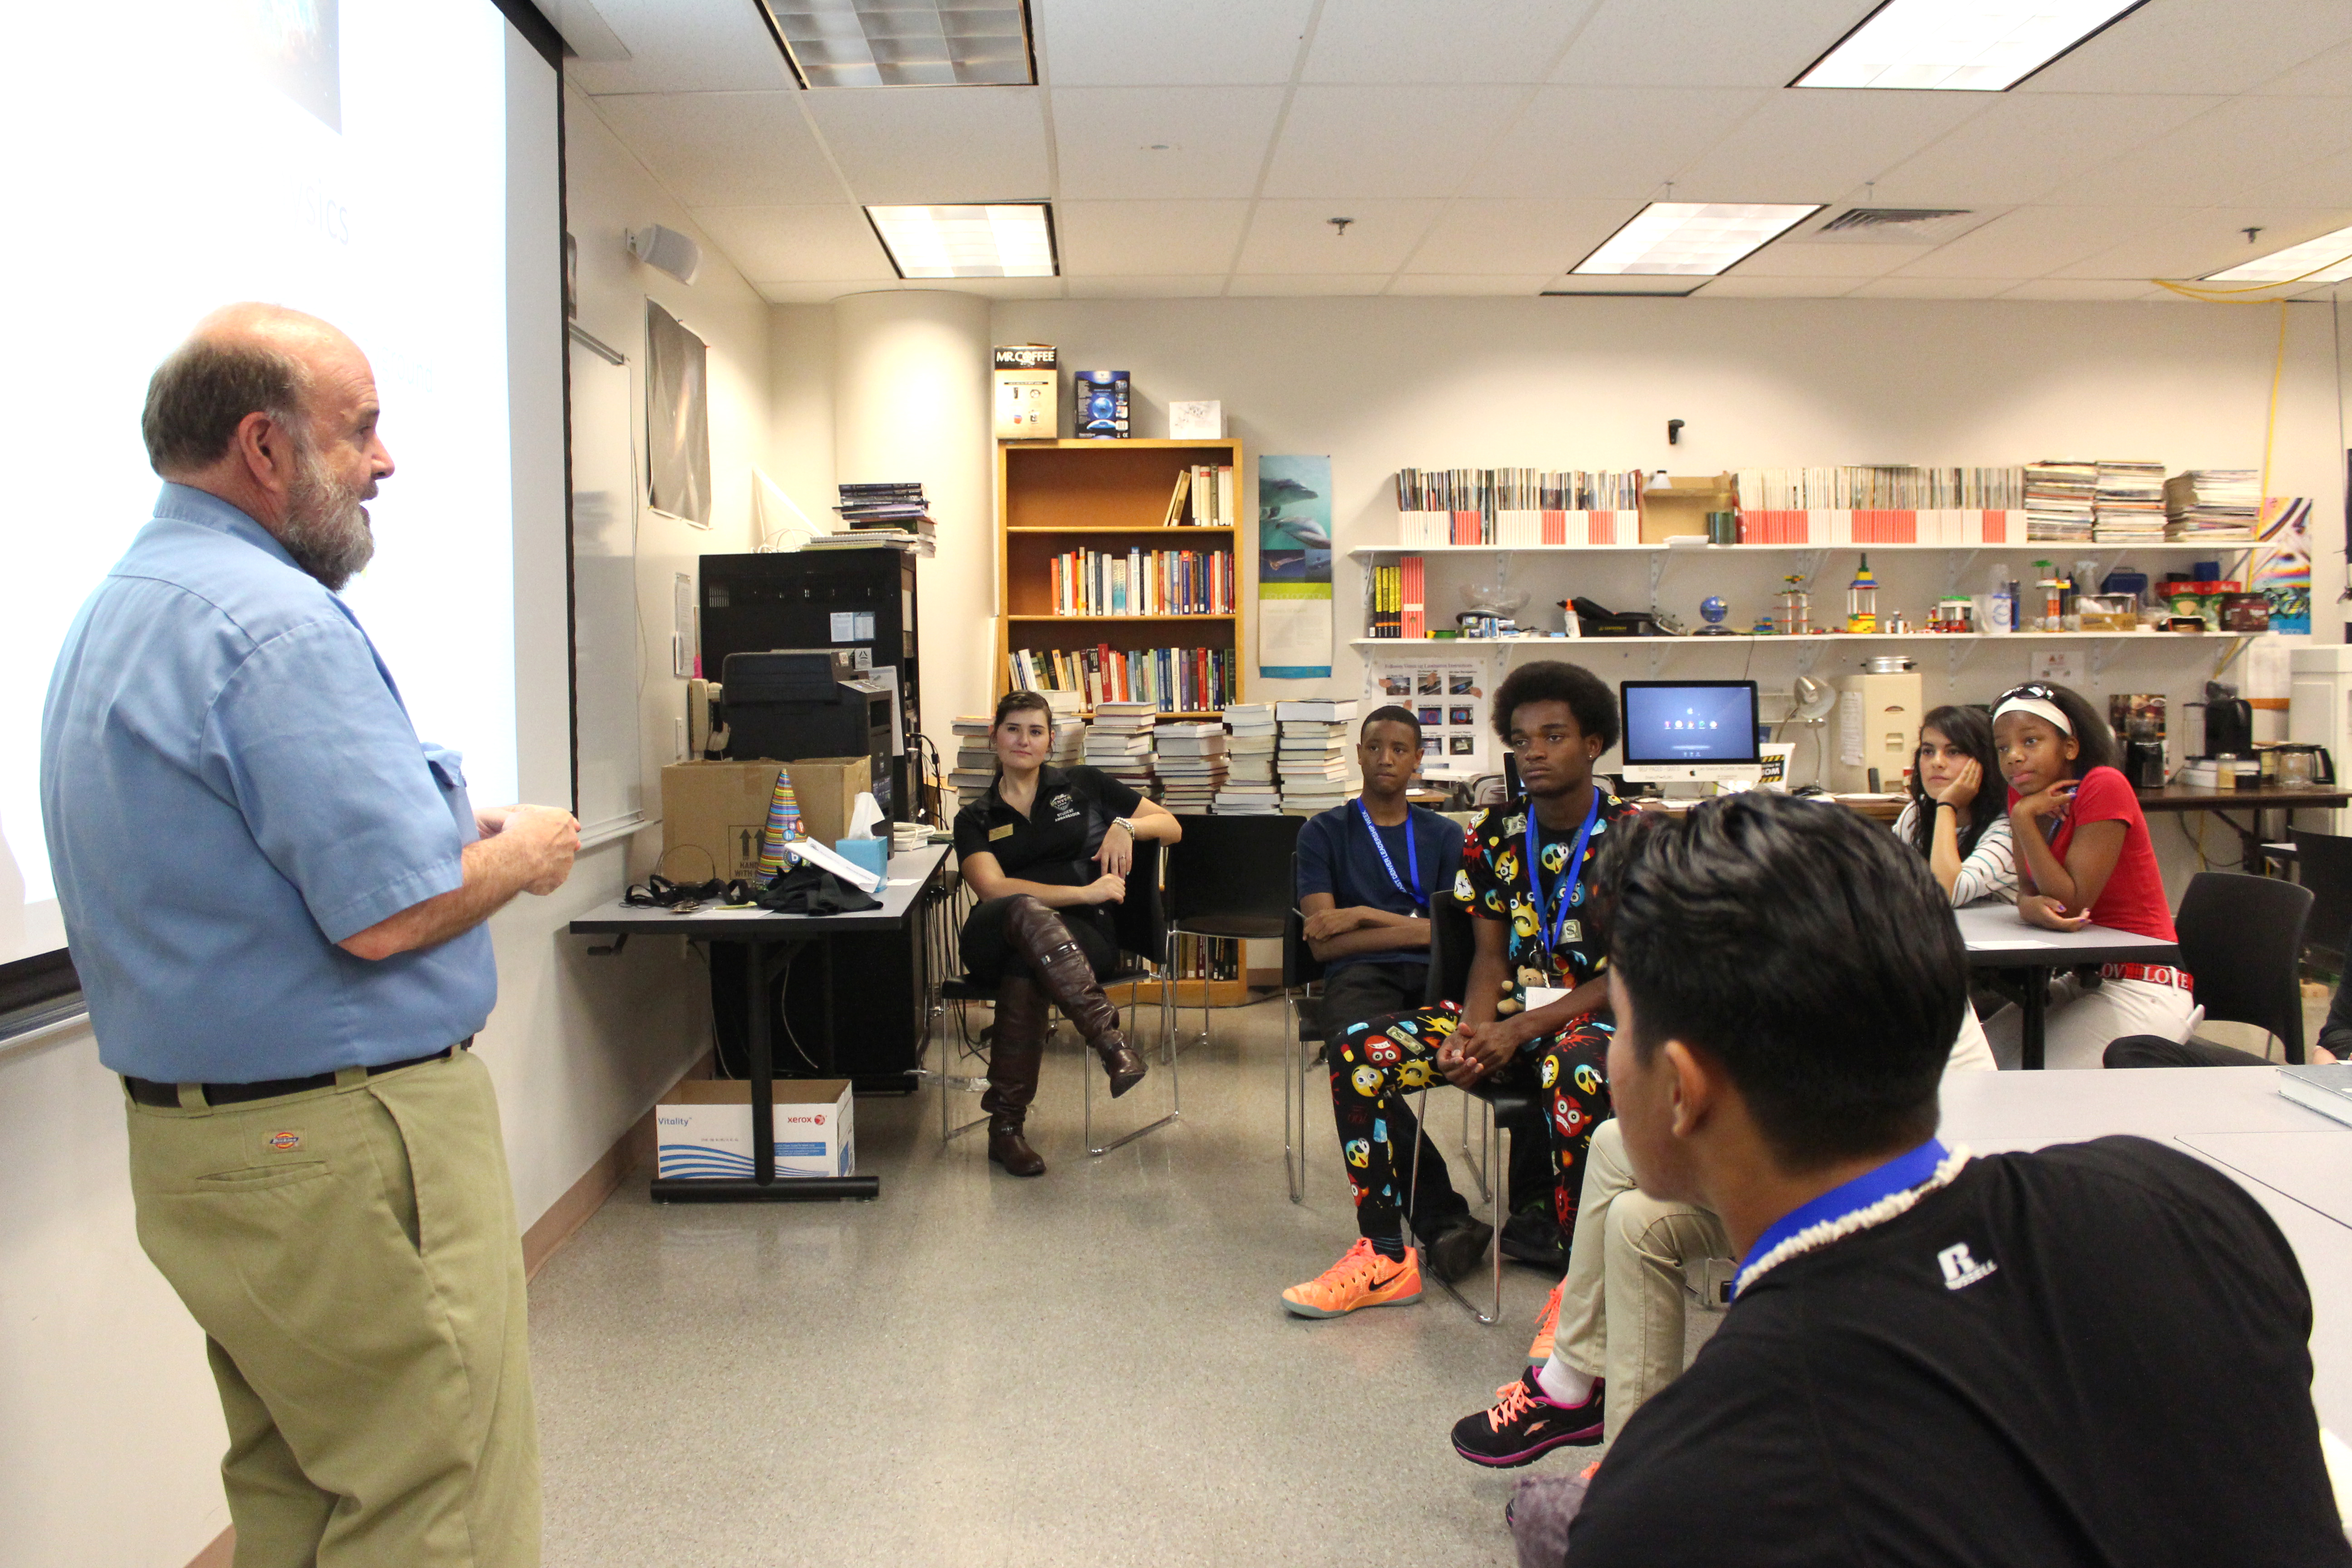 Students look on as a CU Denver physics instructor talks to them about physics and space. Physics was one of six majors students could explore during breakout sessions.